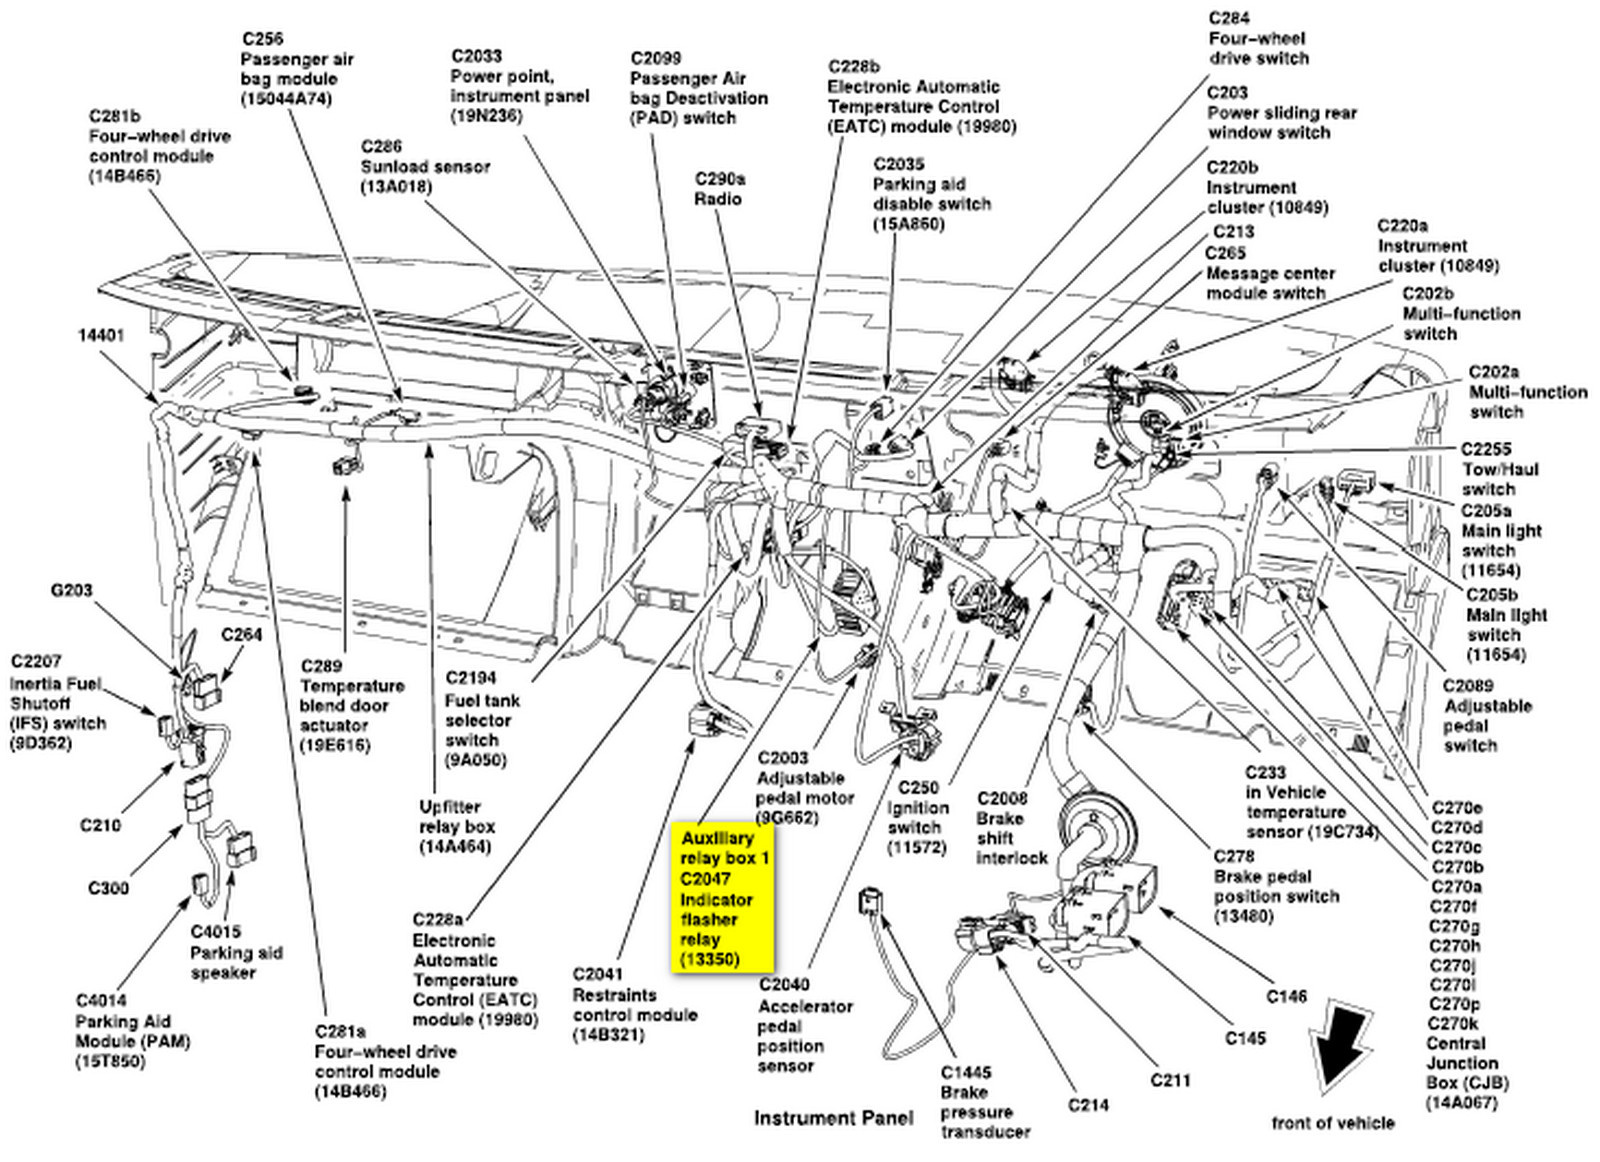 Discussion T60374 ds560387 on 2005 ford freestyle fuse panel diagram